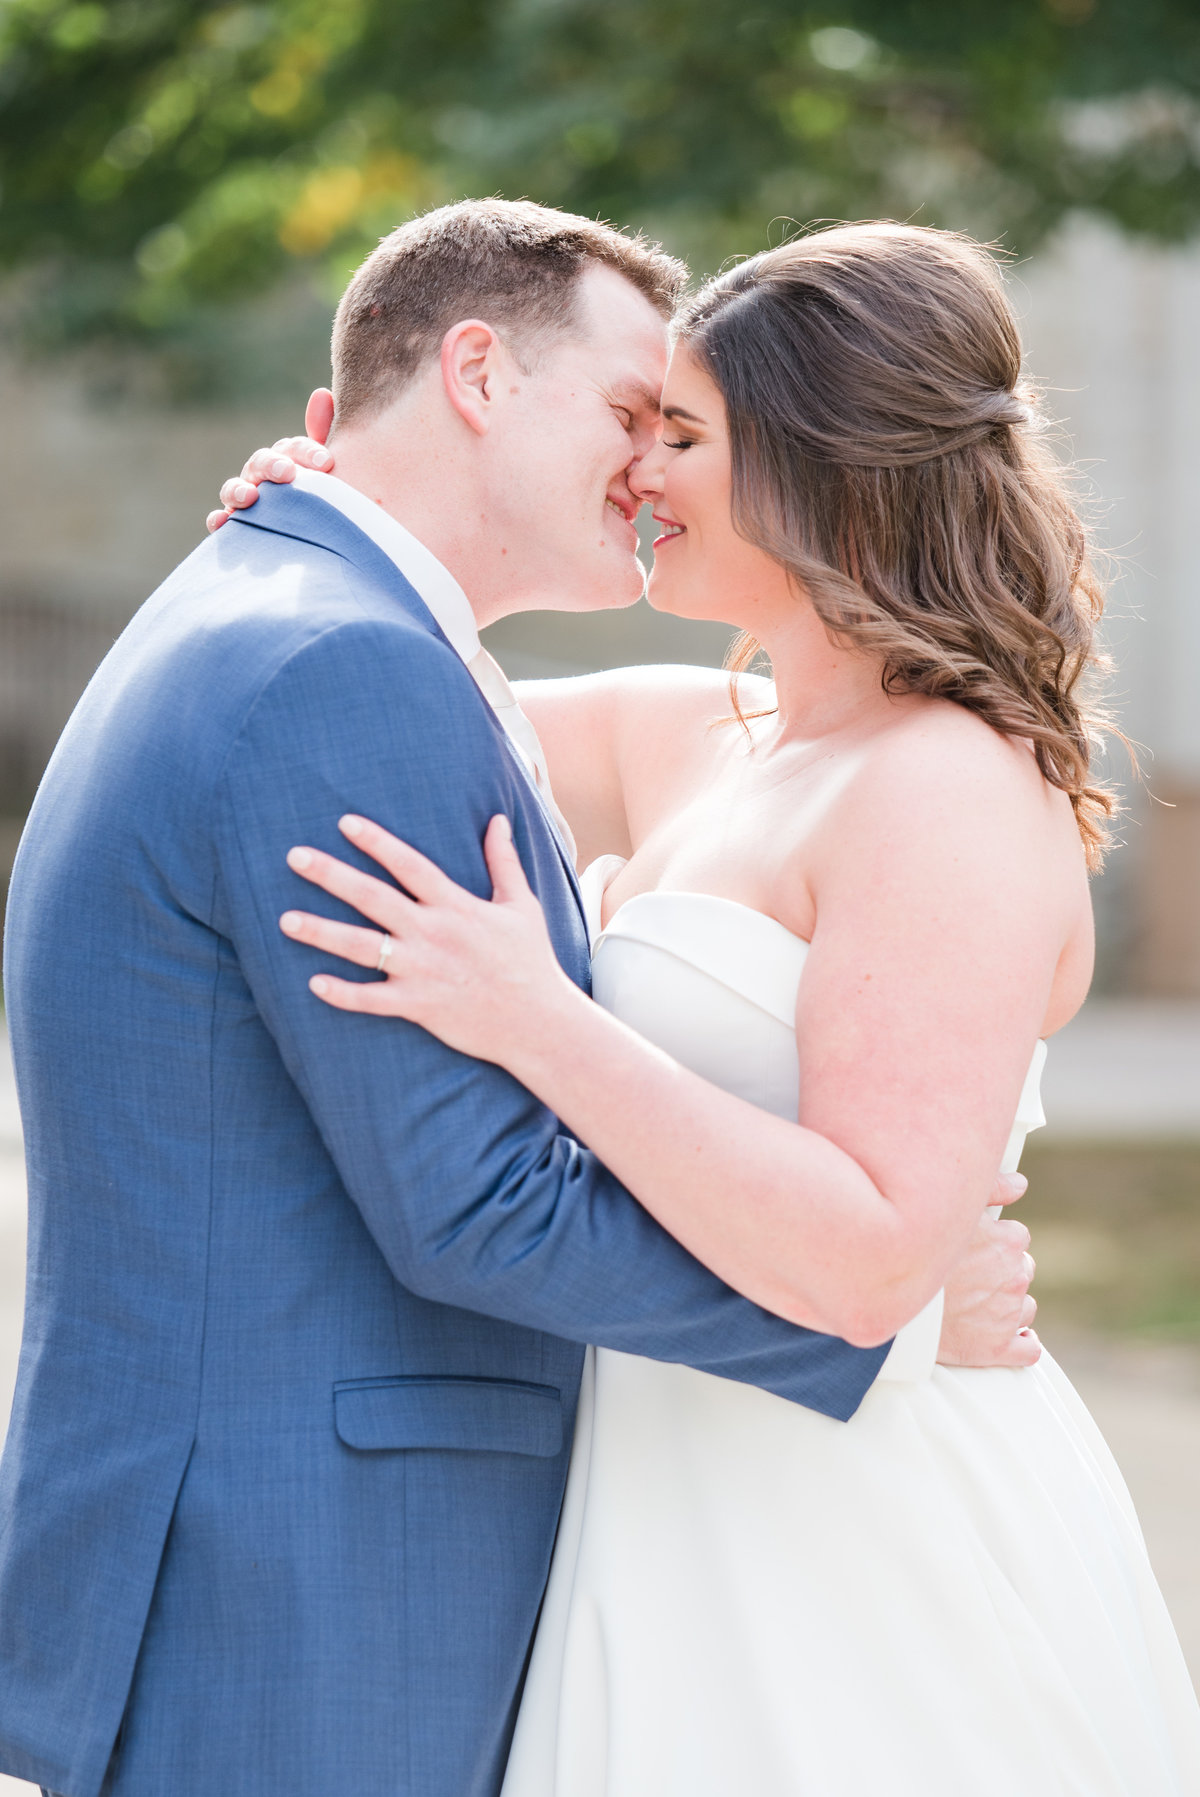 Newlywed Portraits Cait Potter Creative LLC Milltop Potters Bridge Noblesville Square Courthouse Wedding-19